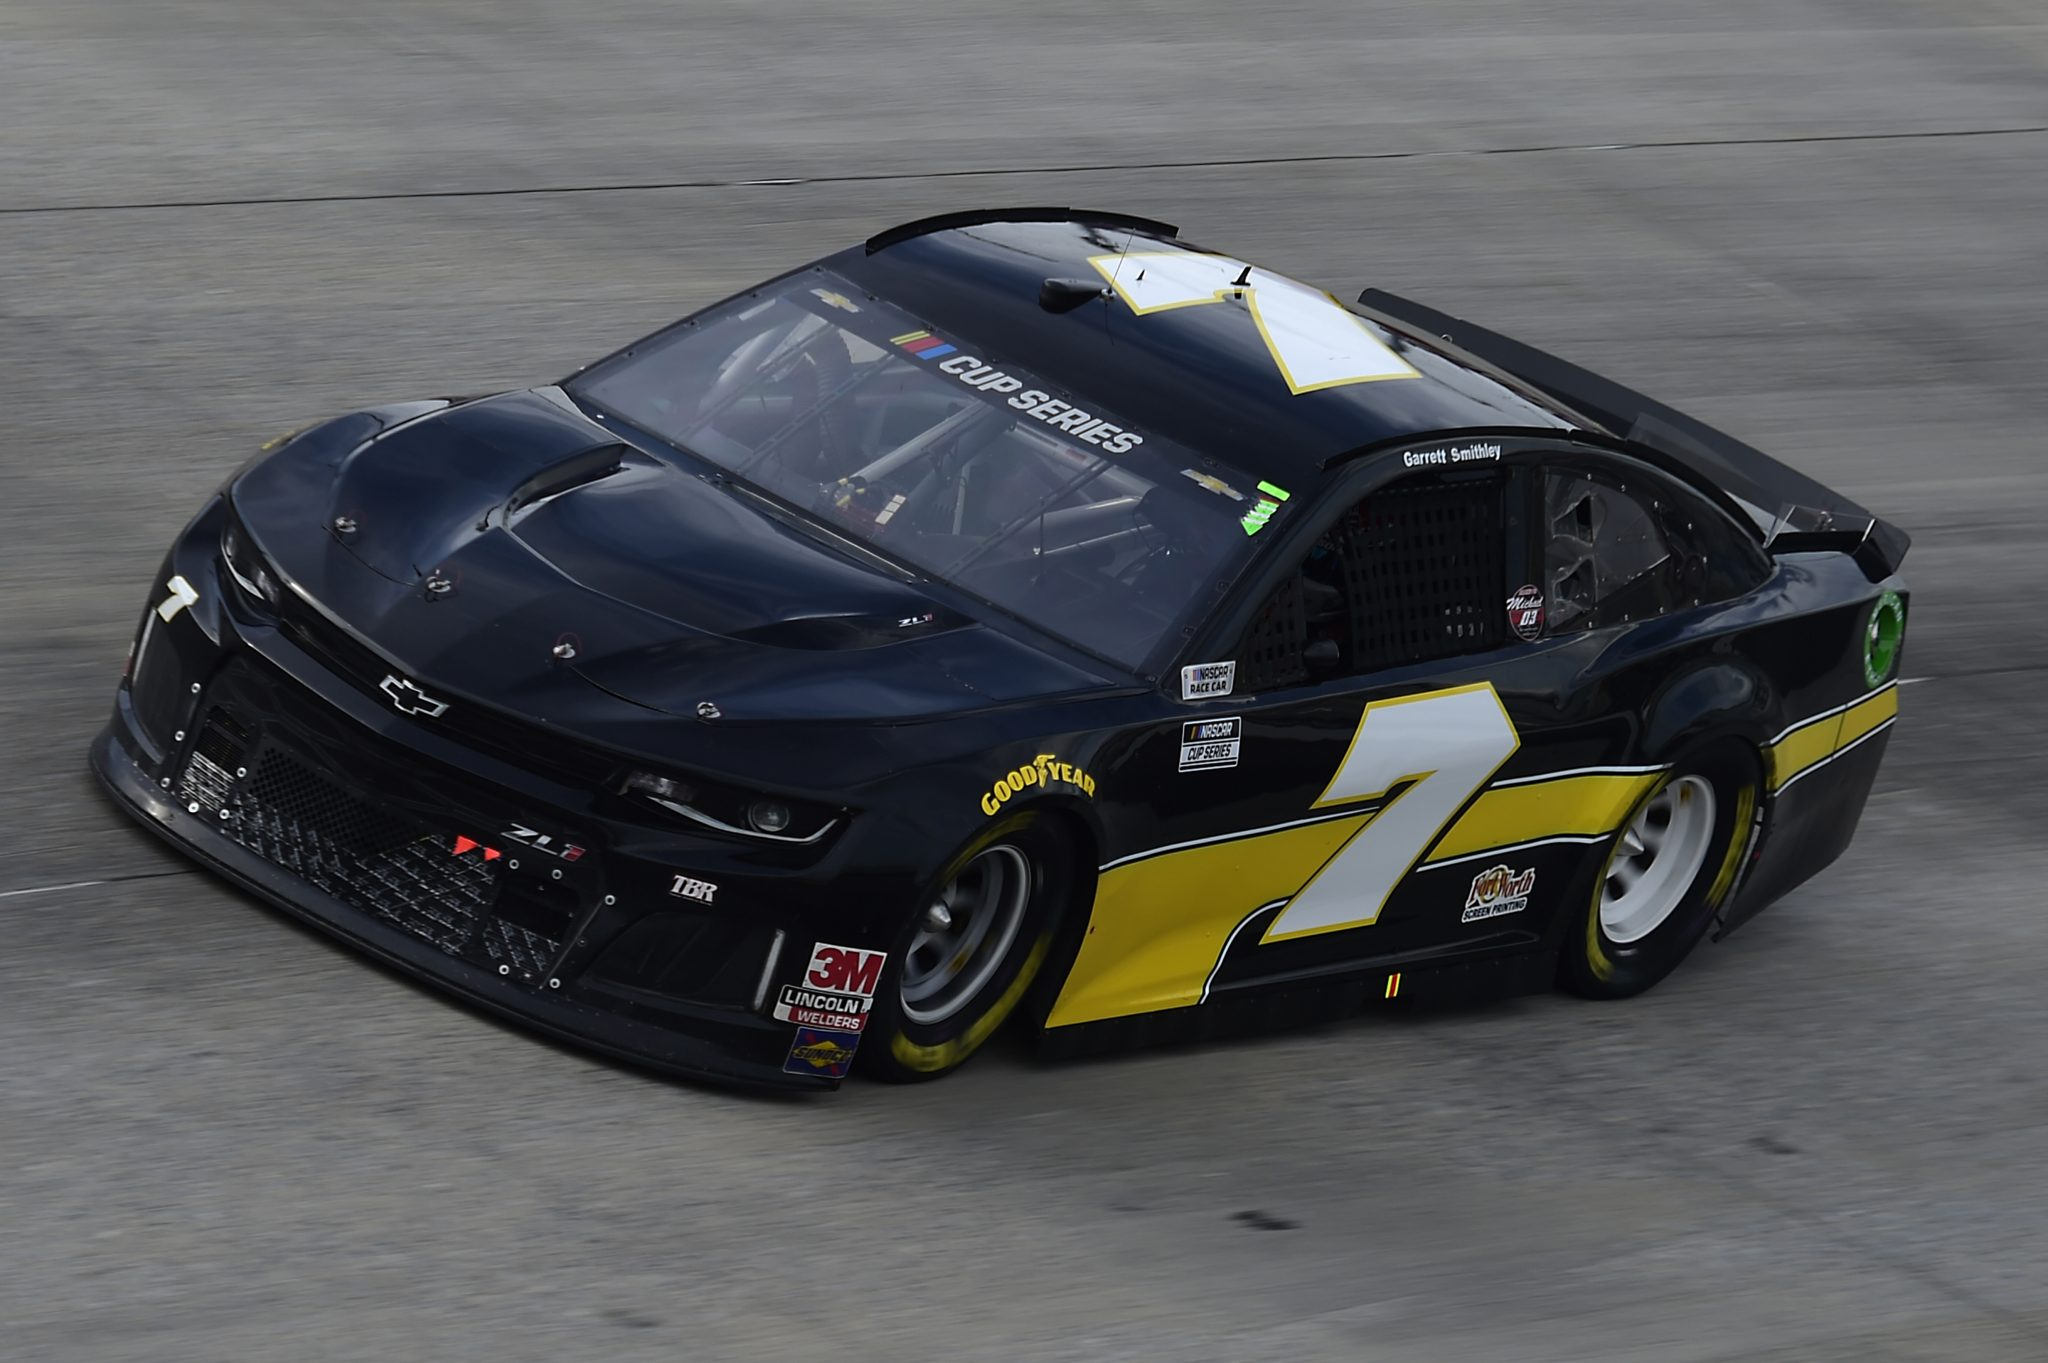 DOVER, DELAWARE - AUGUST 22: Garrett Smithley, driver of the #7 Chevrolet, drives during the NASCAR Cup Series Drydene 311 at Dover International Speedway on August 22, 2020 in Dover, Delaware. (Photo by Jared C. Tilton/Getty Images) | Getty Images